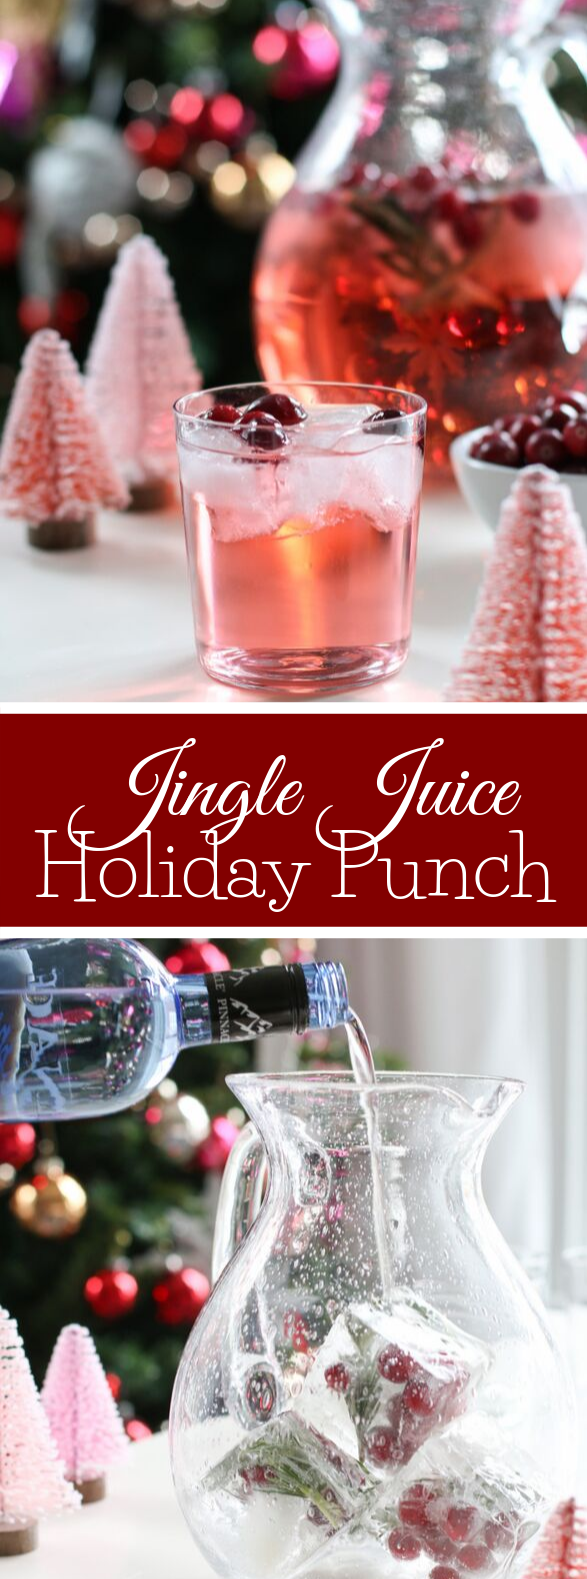 JINGLE JUICE HOLIDAY PUNCH #drinks #cocktails